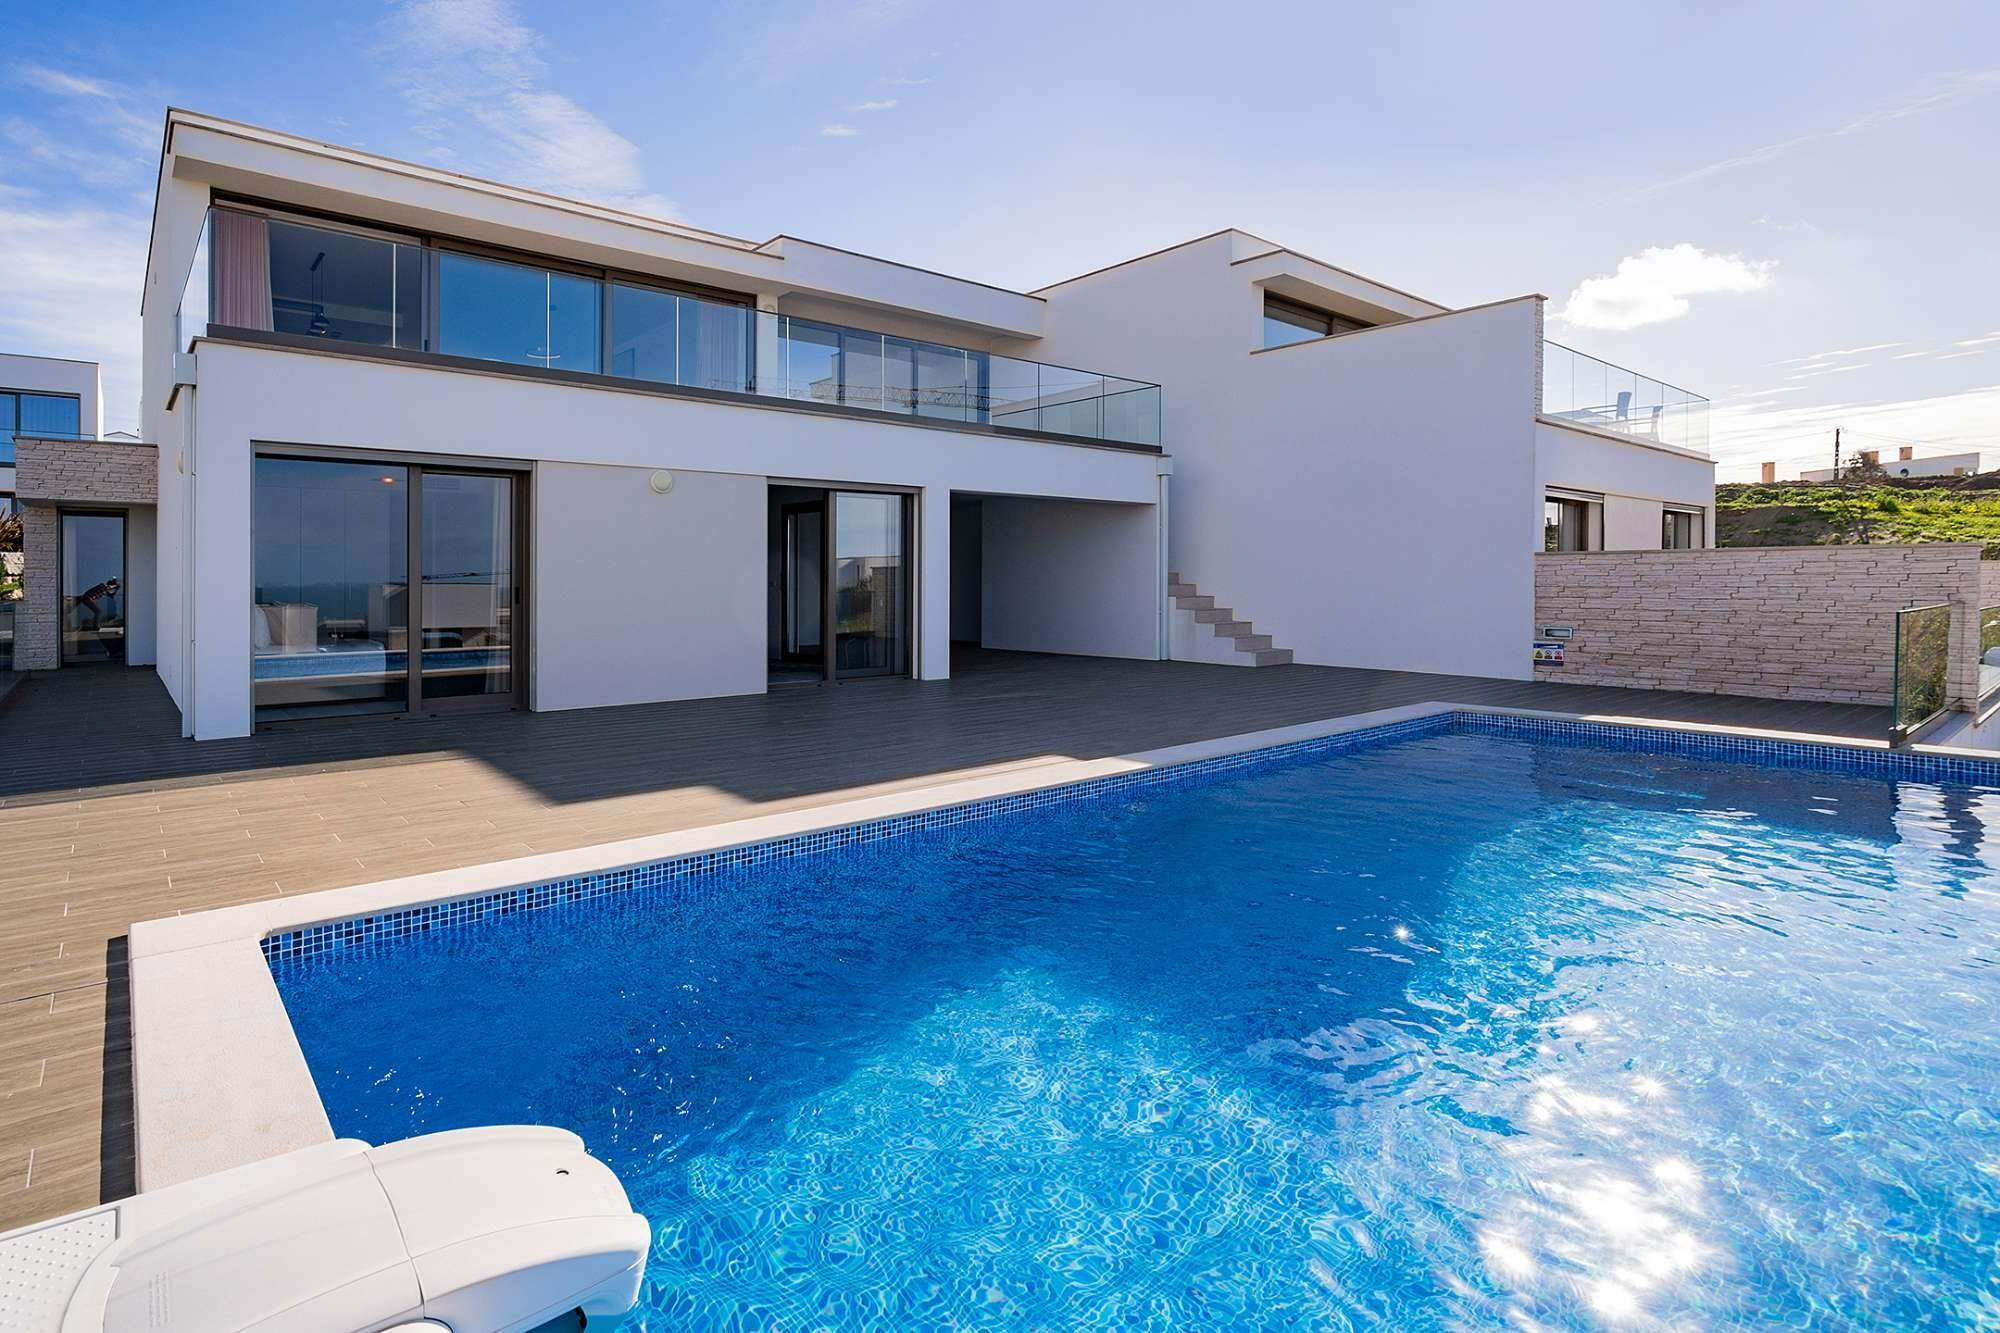 Villas / Maisons de ville pour l à vendre à Fantastic 4 bedroom villa, with swimming pool, located in a prime place that offers panoramic view over the sea.The vil... Lisbonne, Portugal